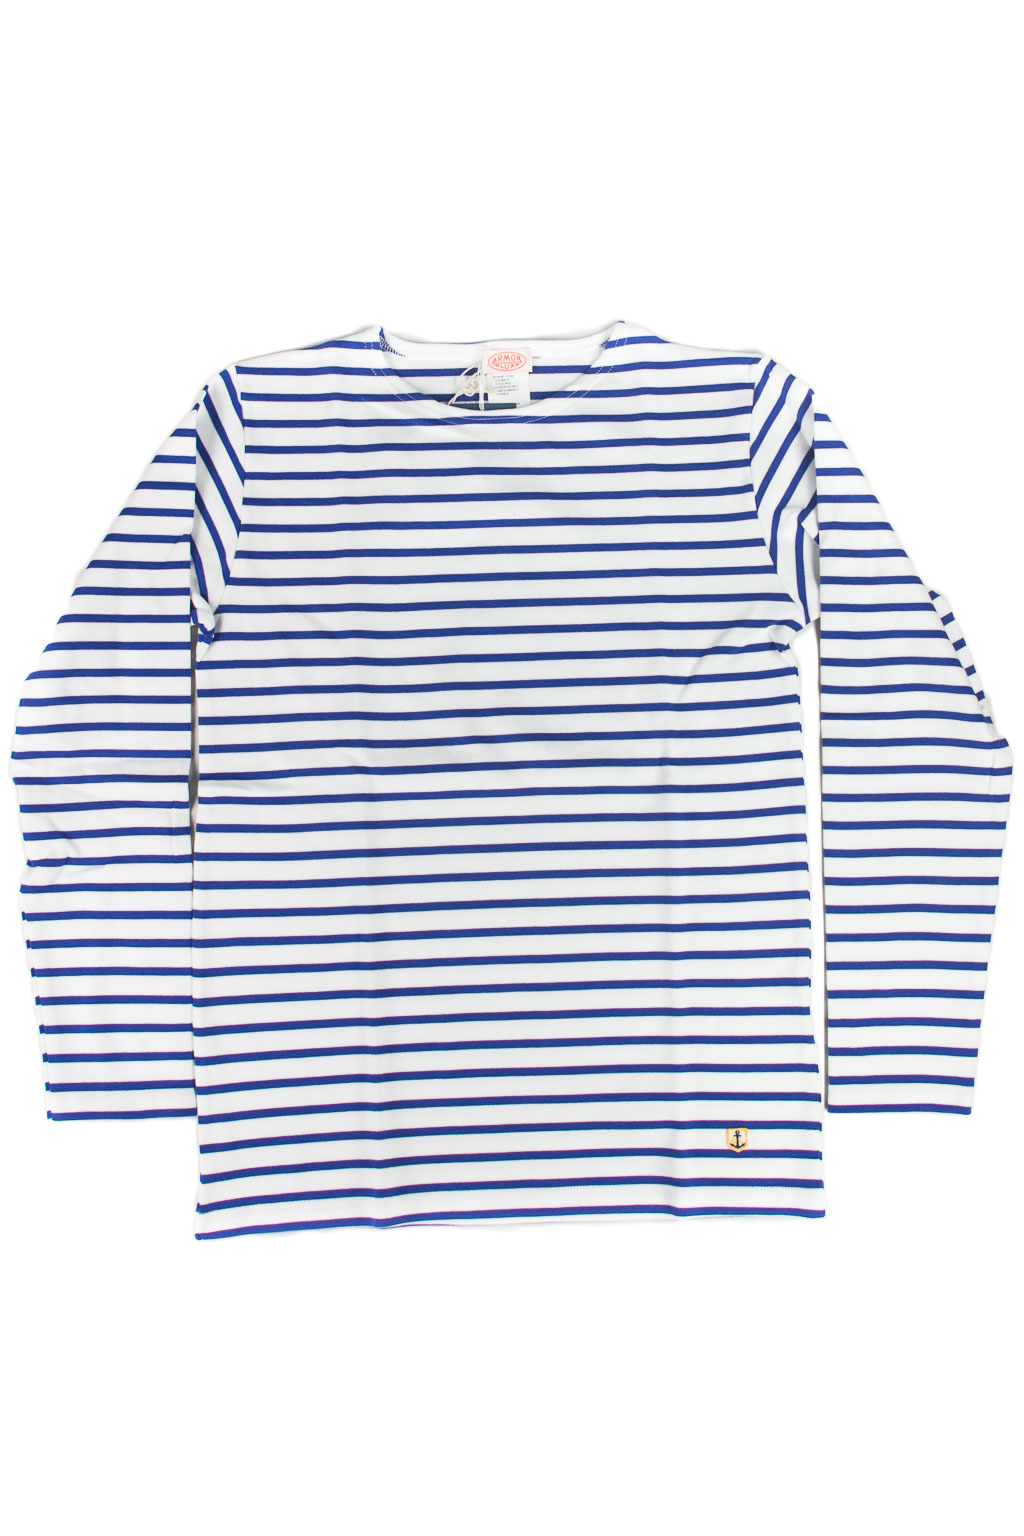 Heritage Breton Shirt White/ Star Blue